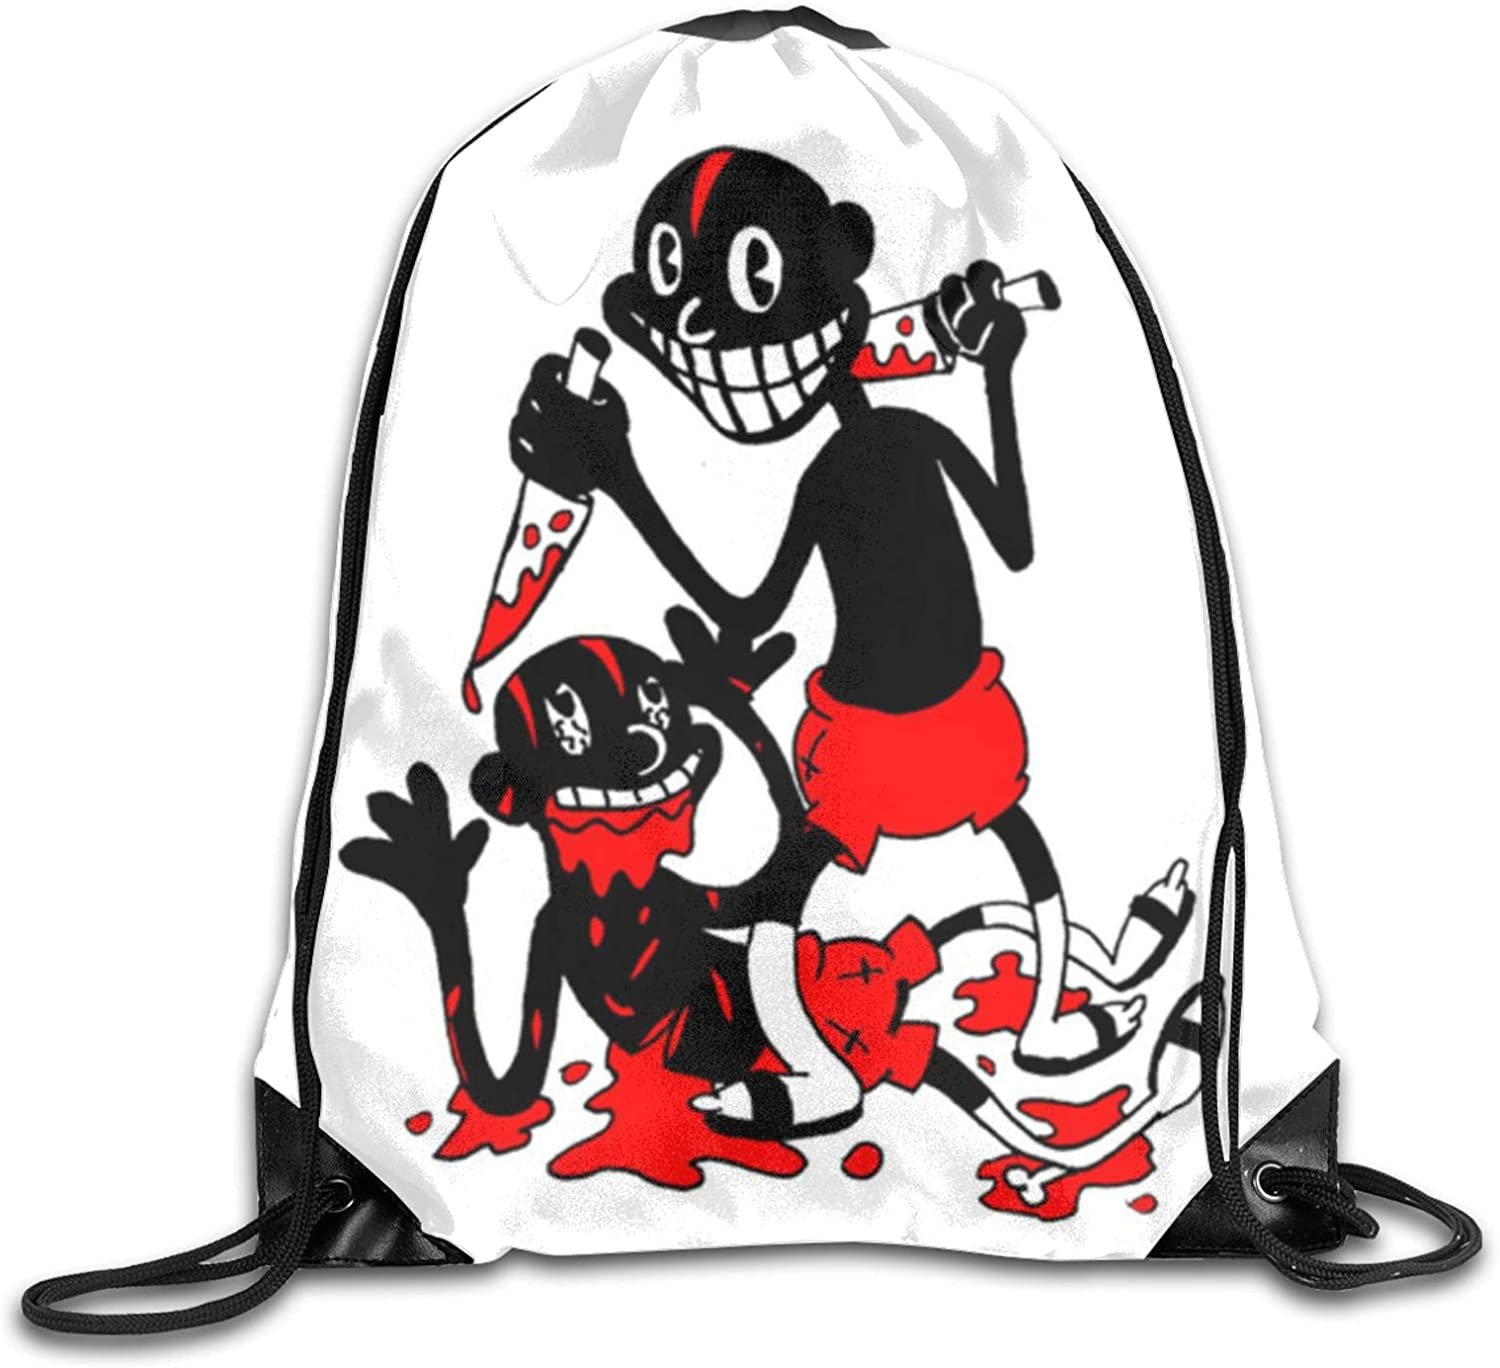 Drawstring Bags For Boys Colorful Flip Flops On The Beach Backpacking Backpack Funny Gym Bag Lightweight With Zipper Pocket Sports Athletic School Travel Gym Cinch Sack